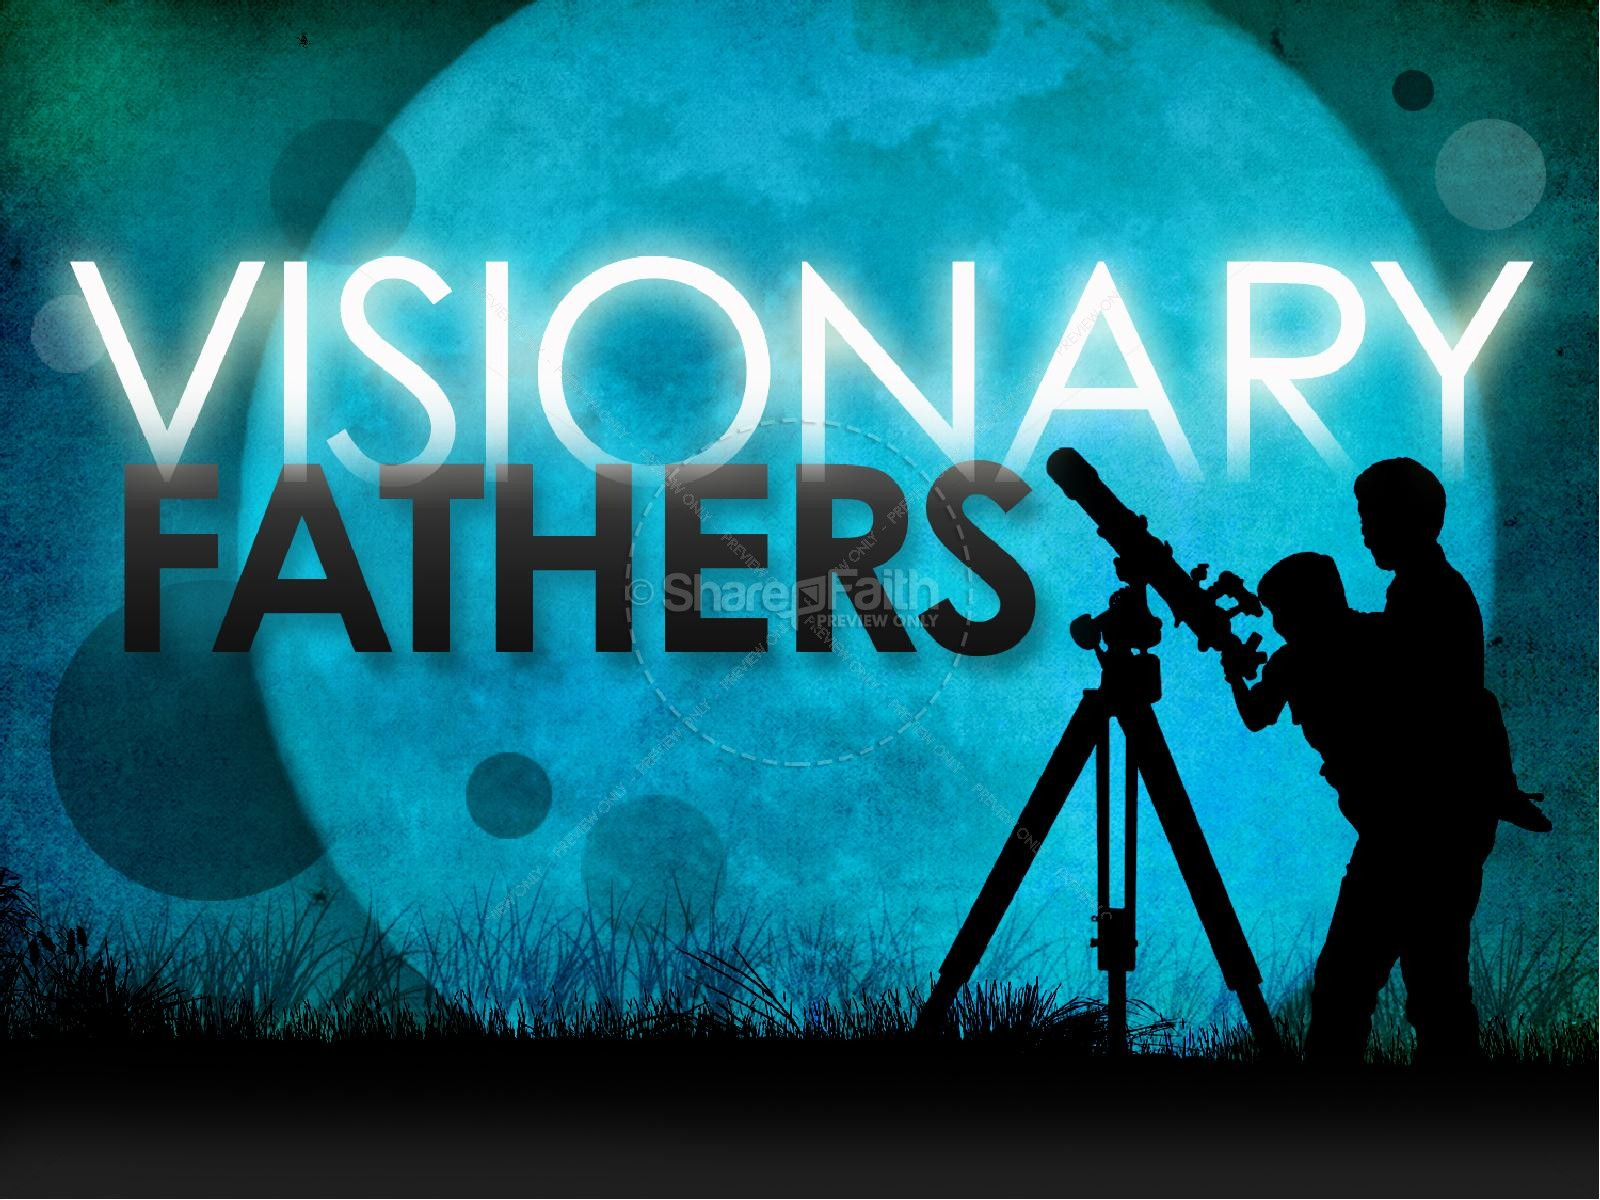 Visionary Father's Day PowerPoint Template | slide 1